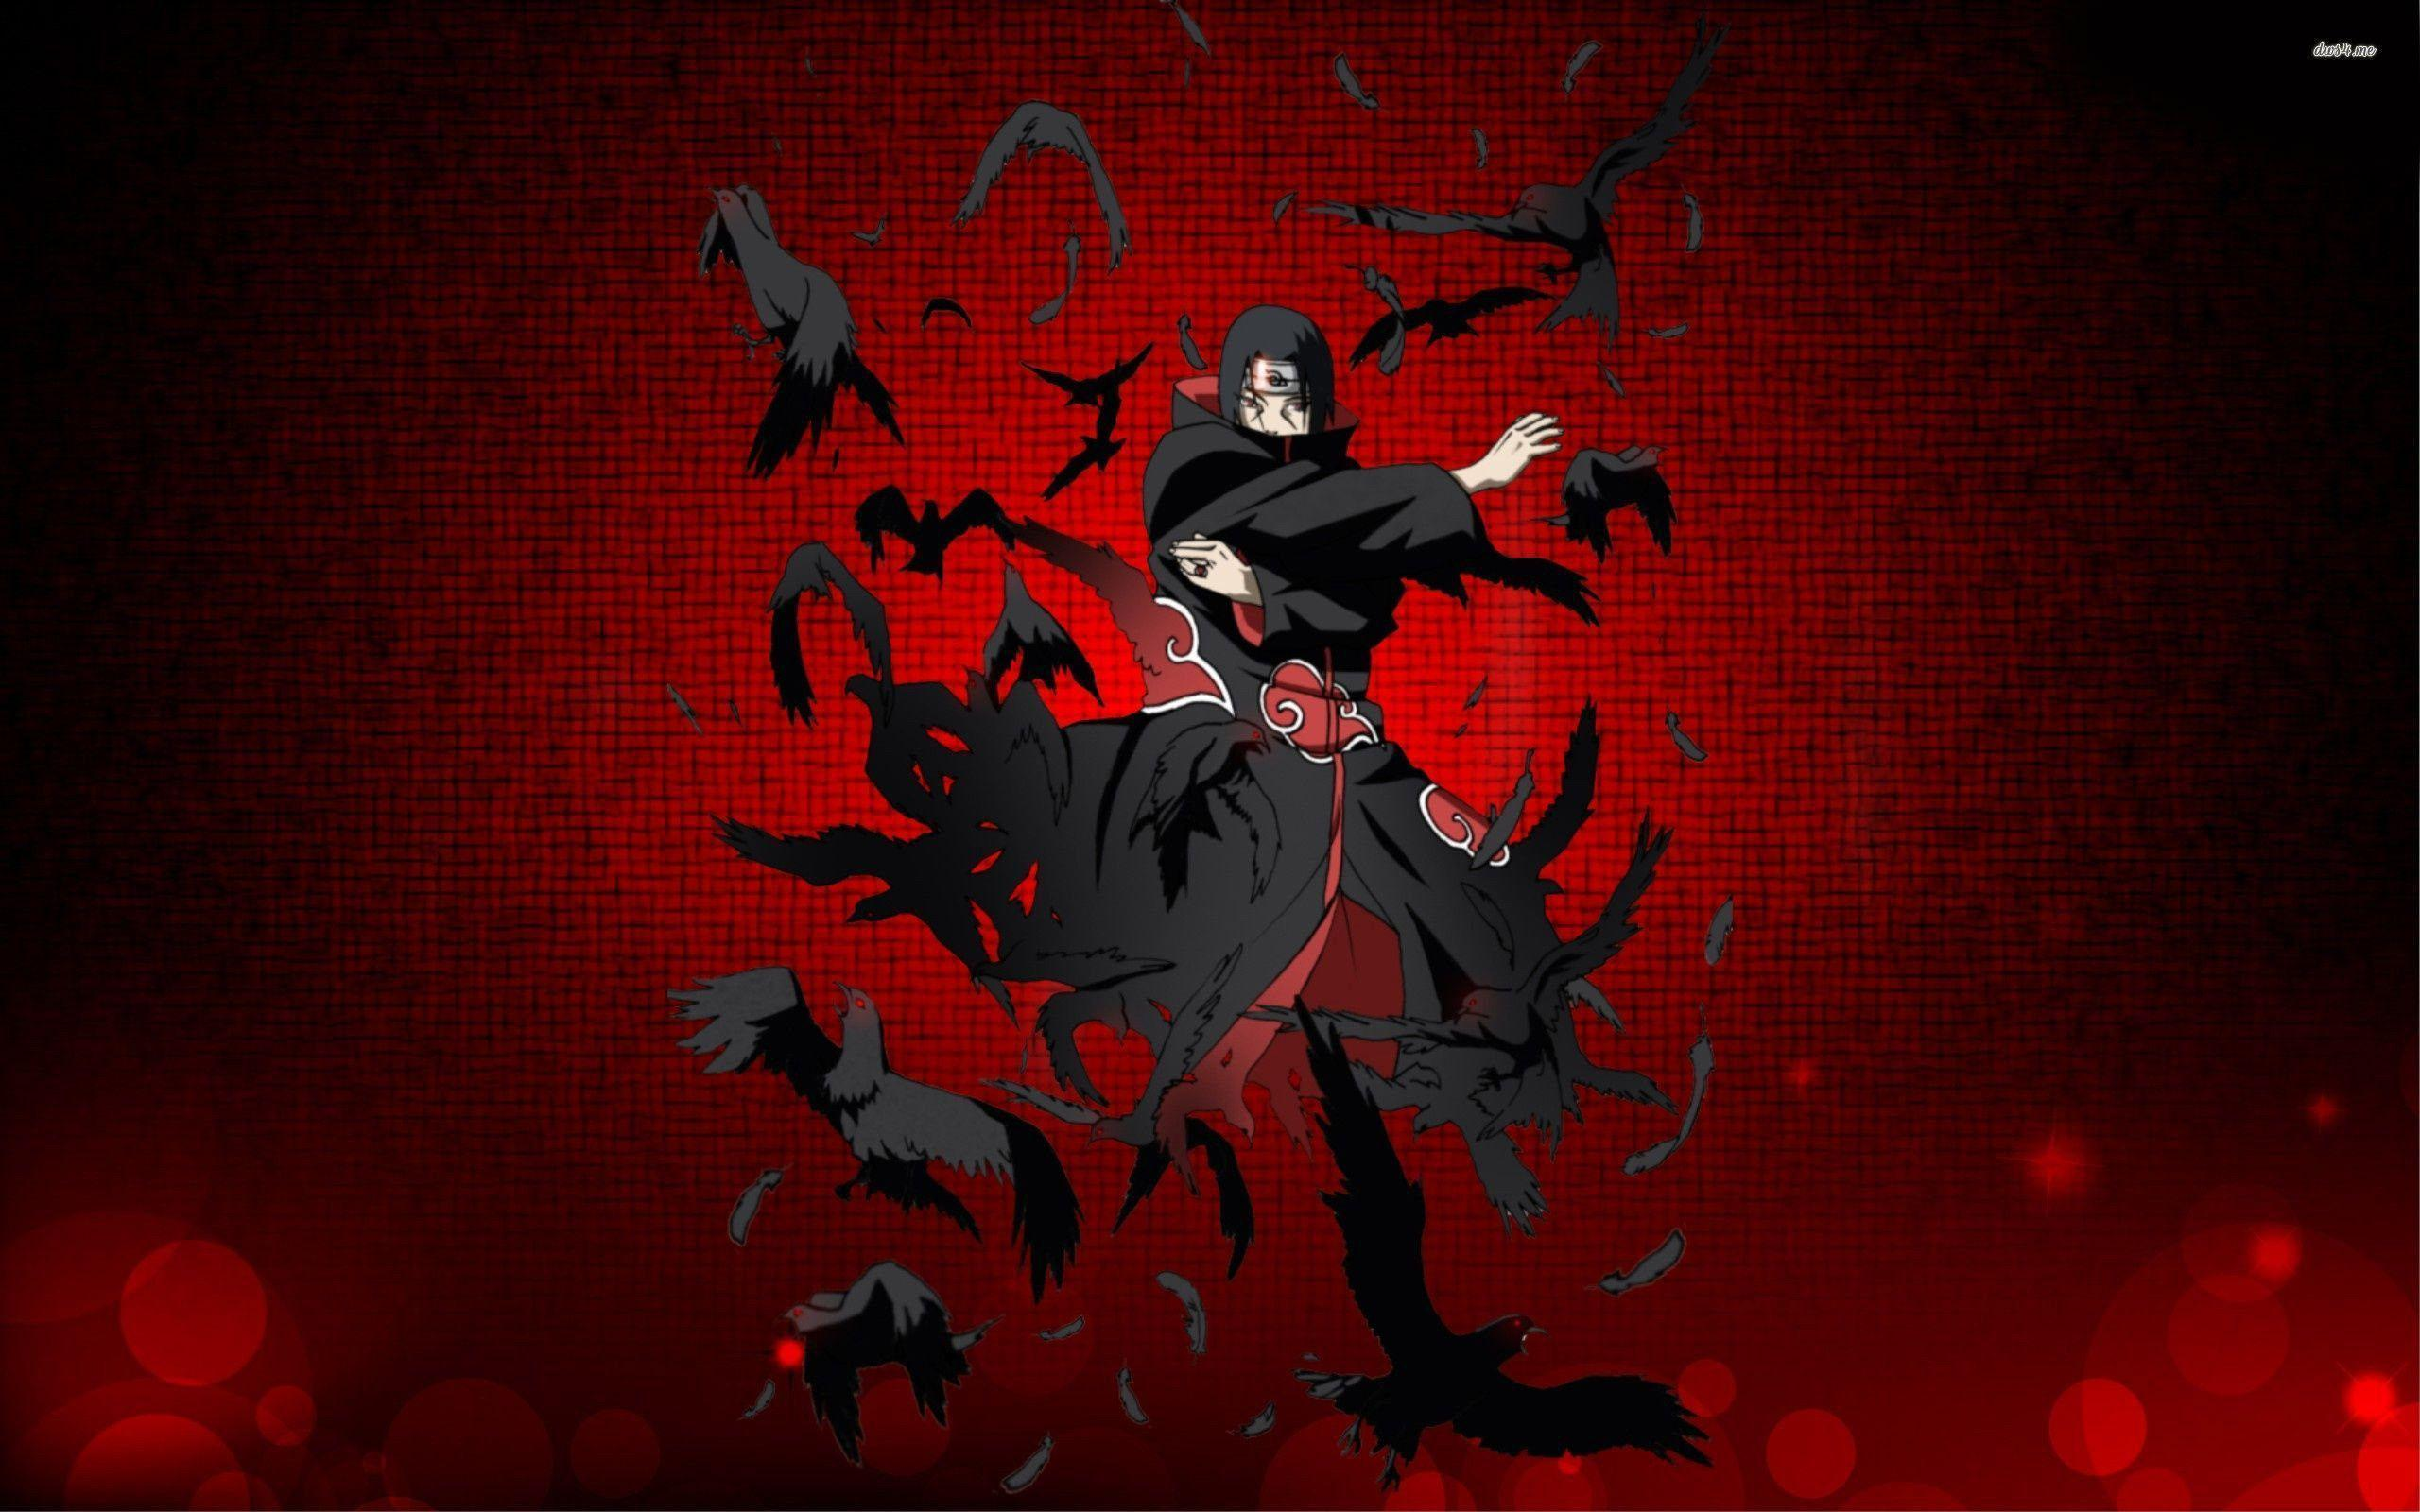 77+] Itachi Wallpapers on WallpaperSafari